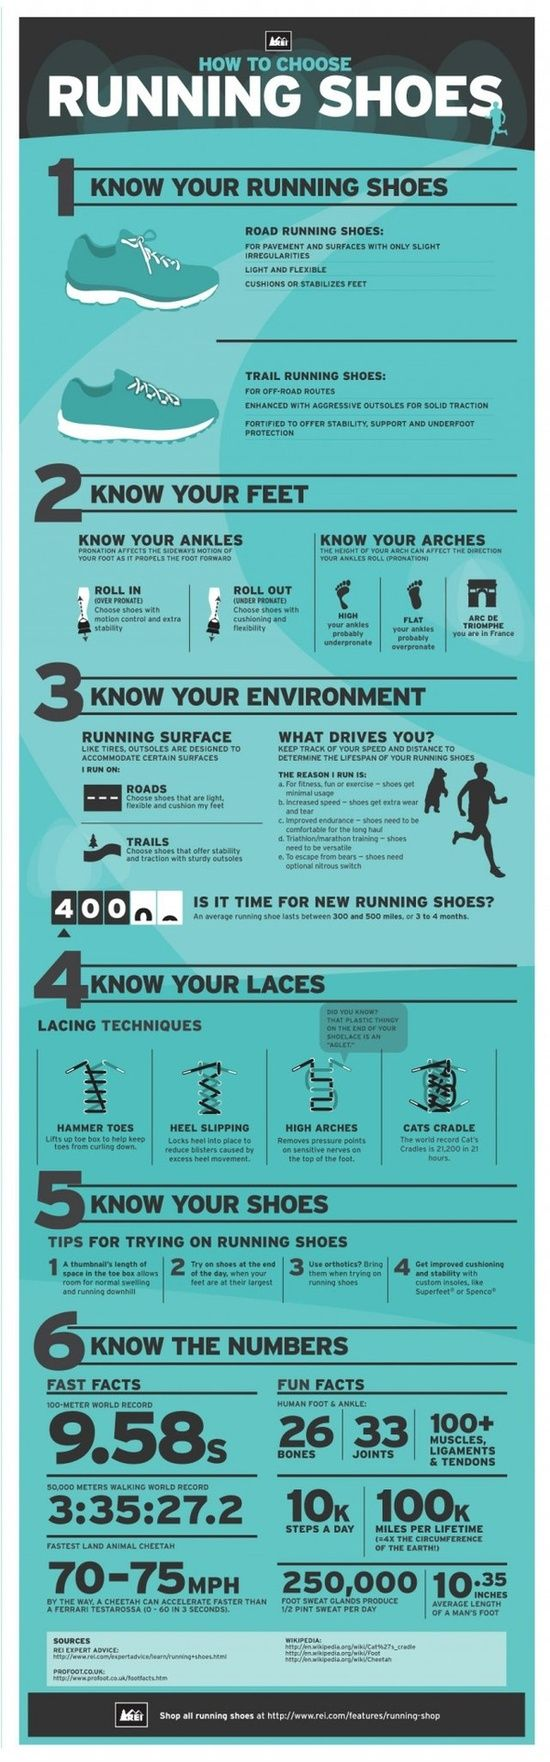 How to choose running shoes